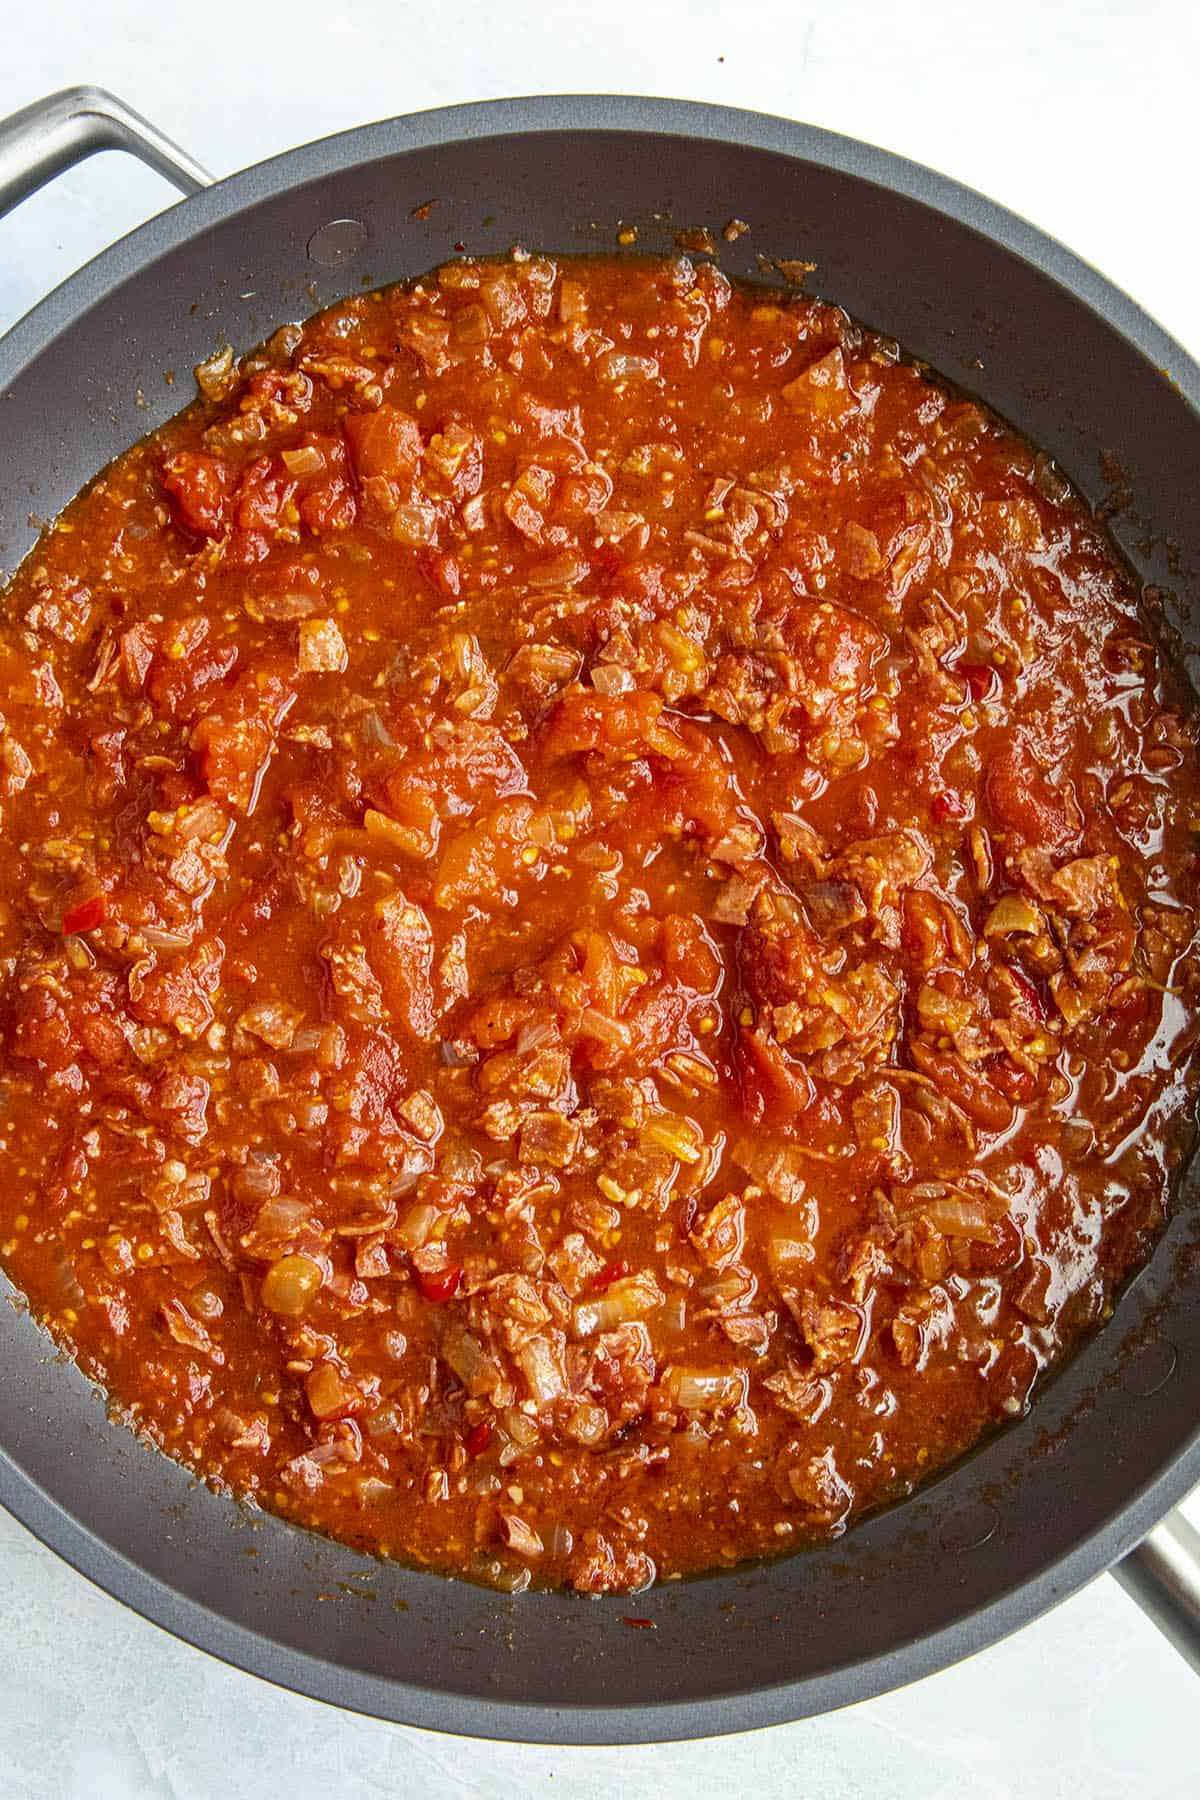 Simmering Amatriciana sauce in a pan